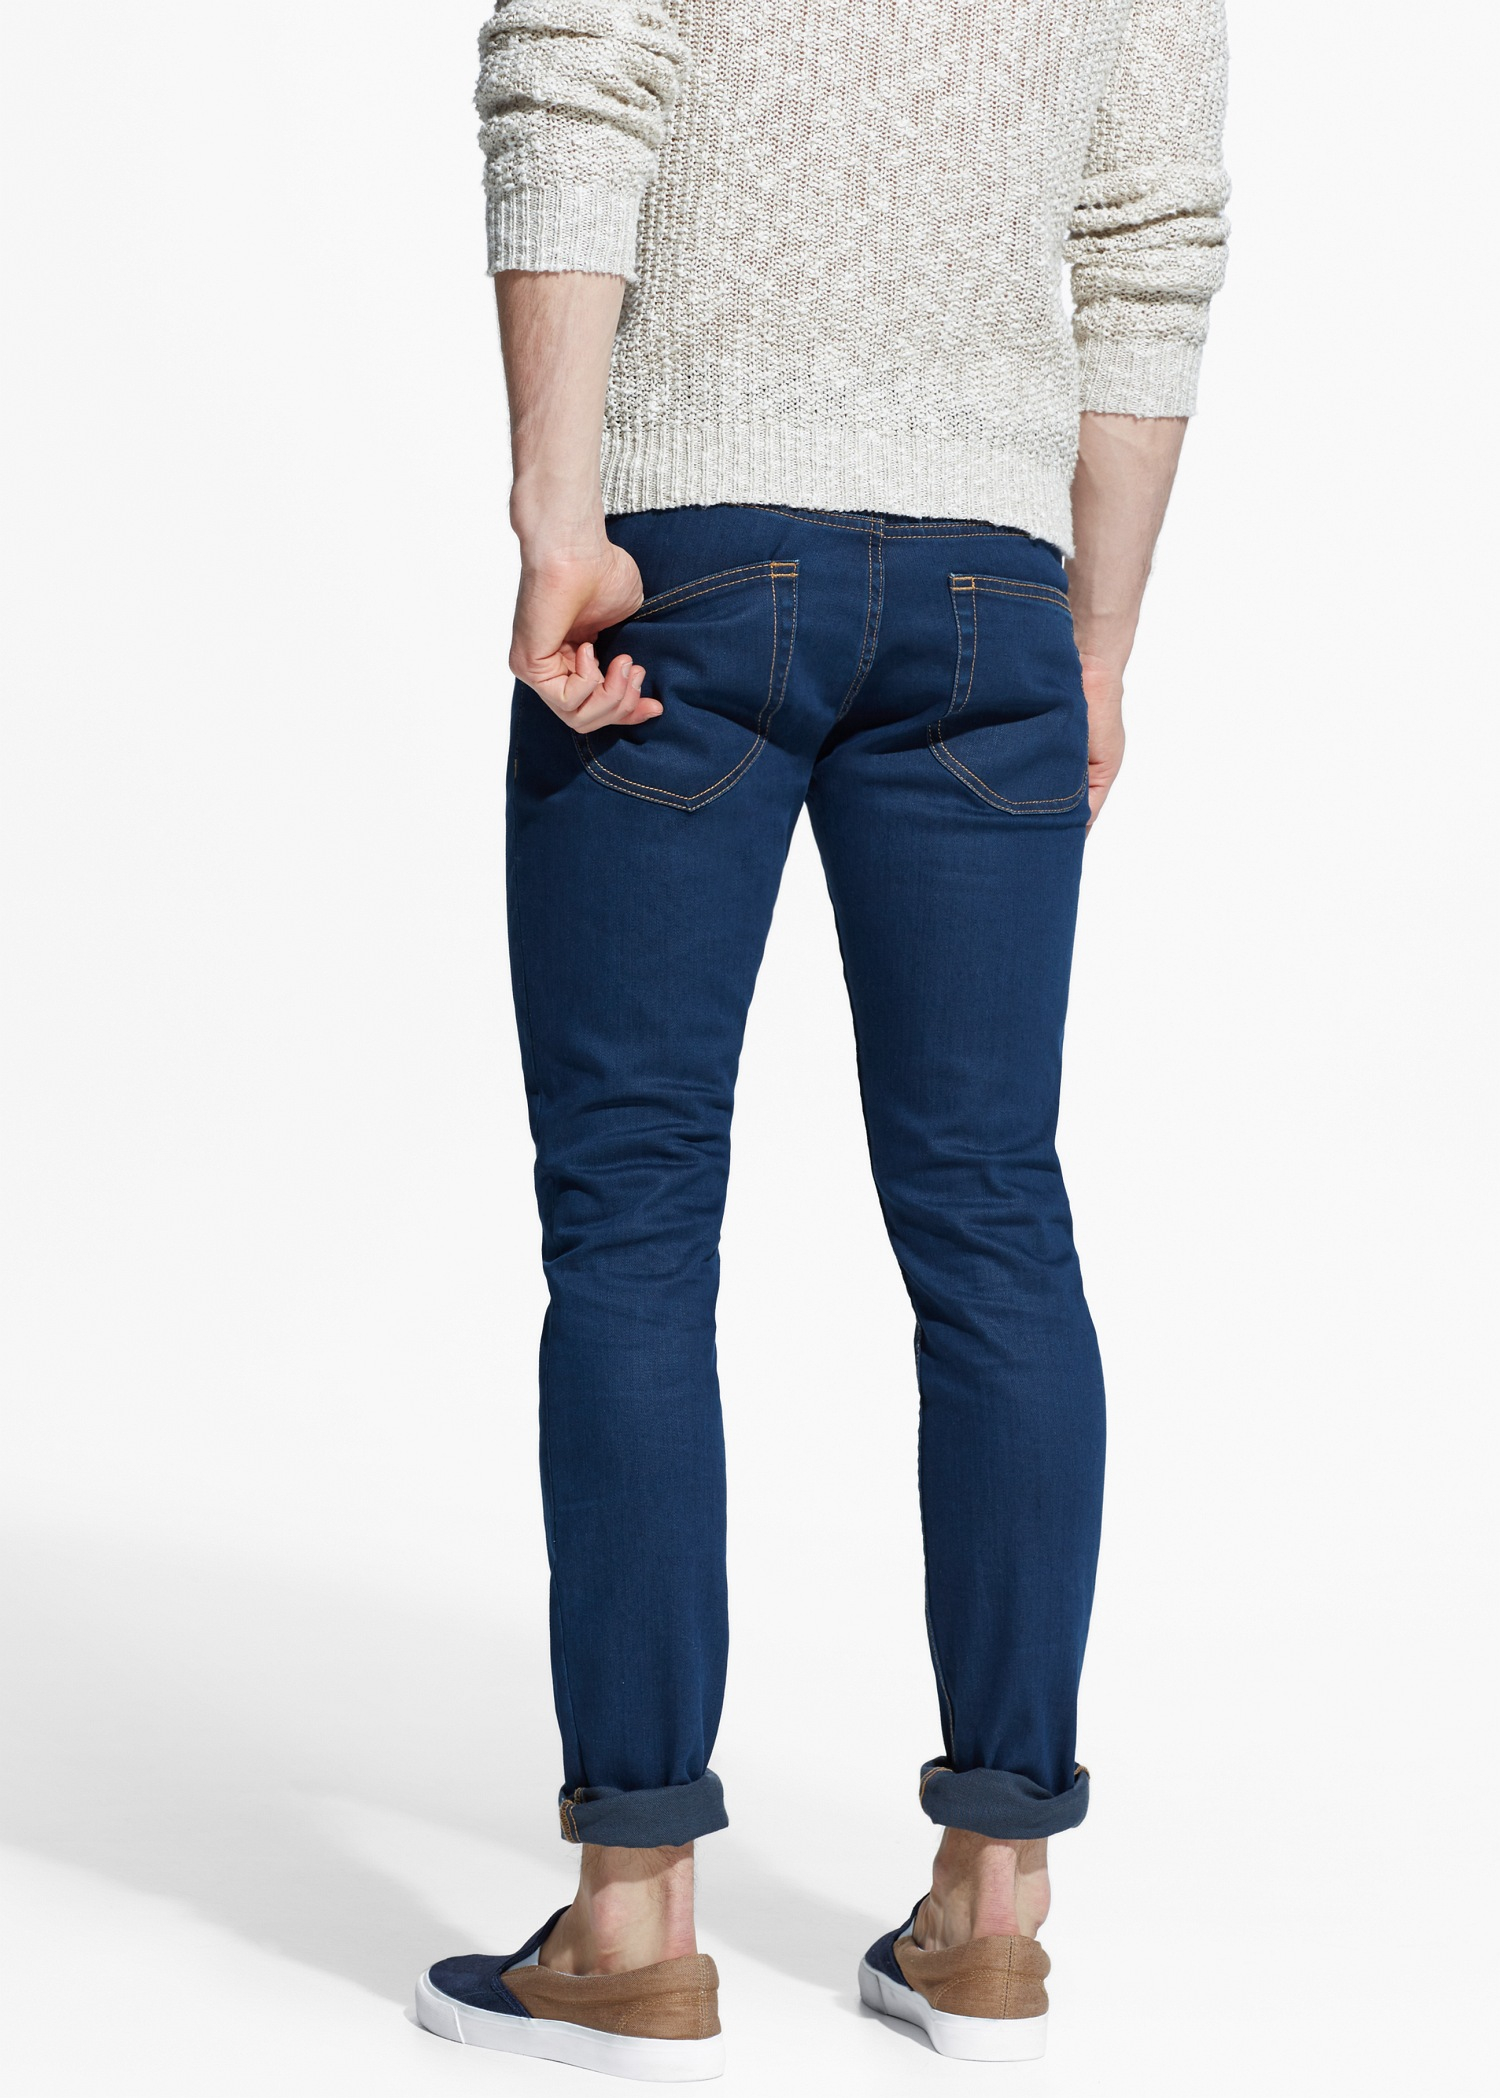 6326846f6eb Lyst - Mango Skinny Navy Jude Jeans in Blue for Men